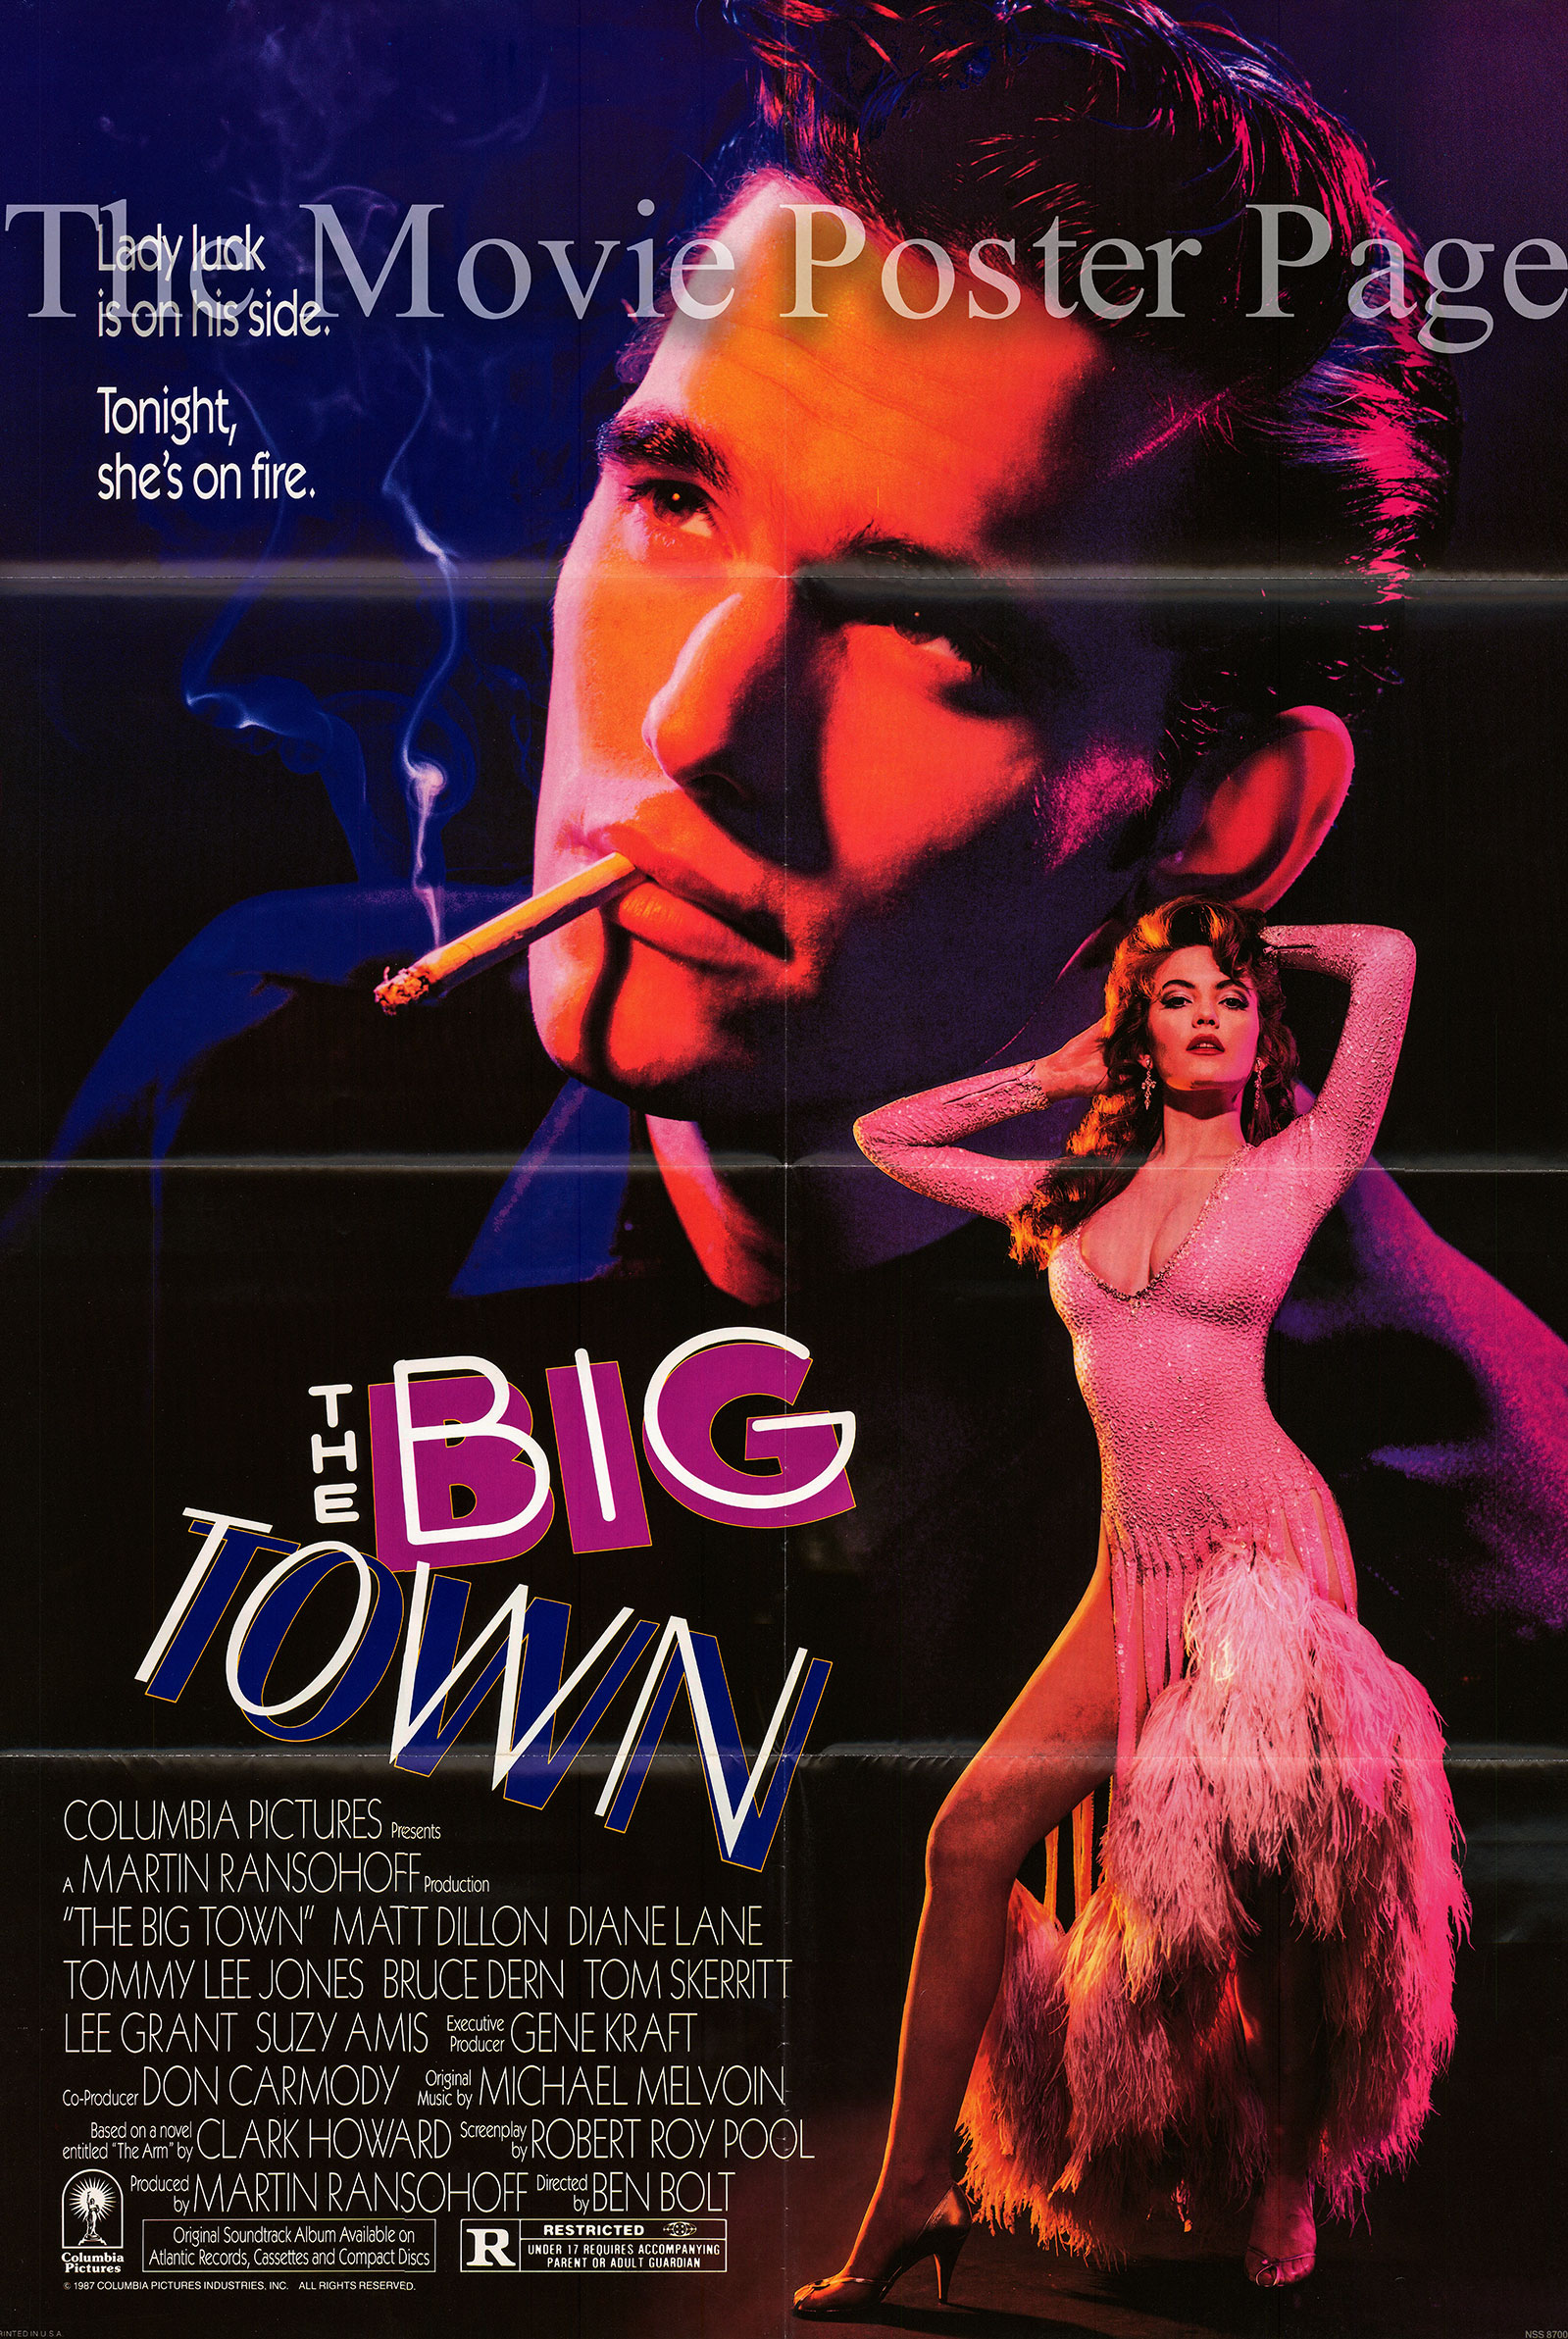 Pictured is a US one-sheet poster for the 1987 Ben Bold film The Big Town starring Matt Dillon.